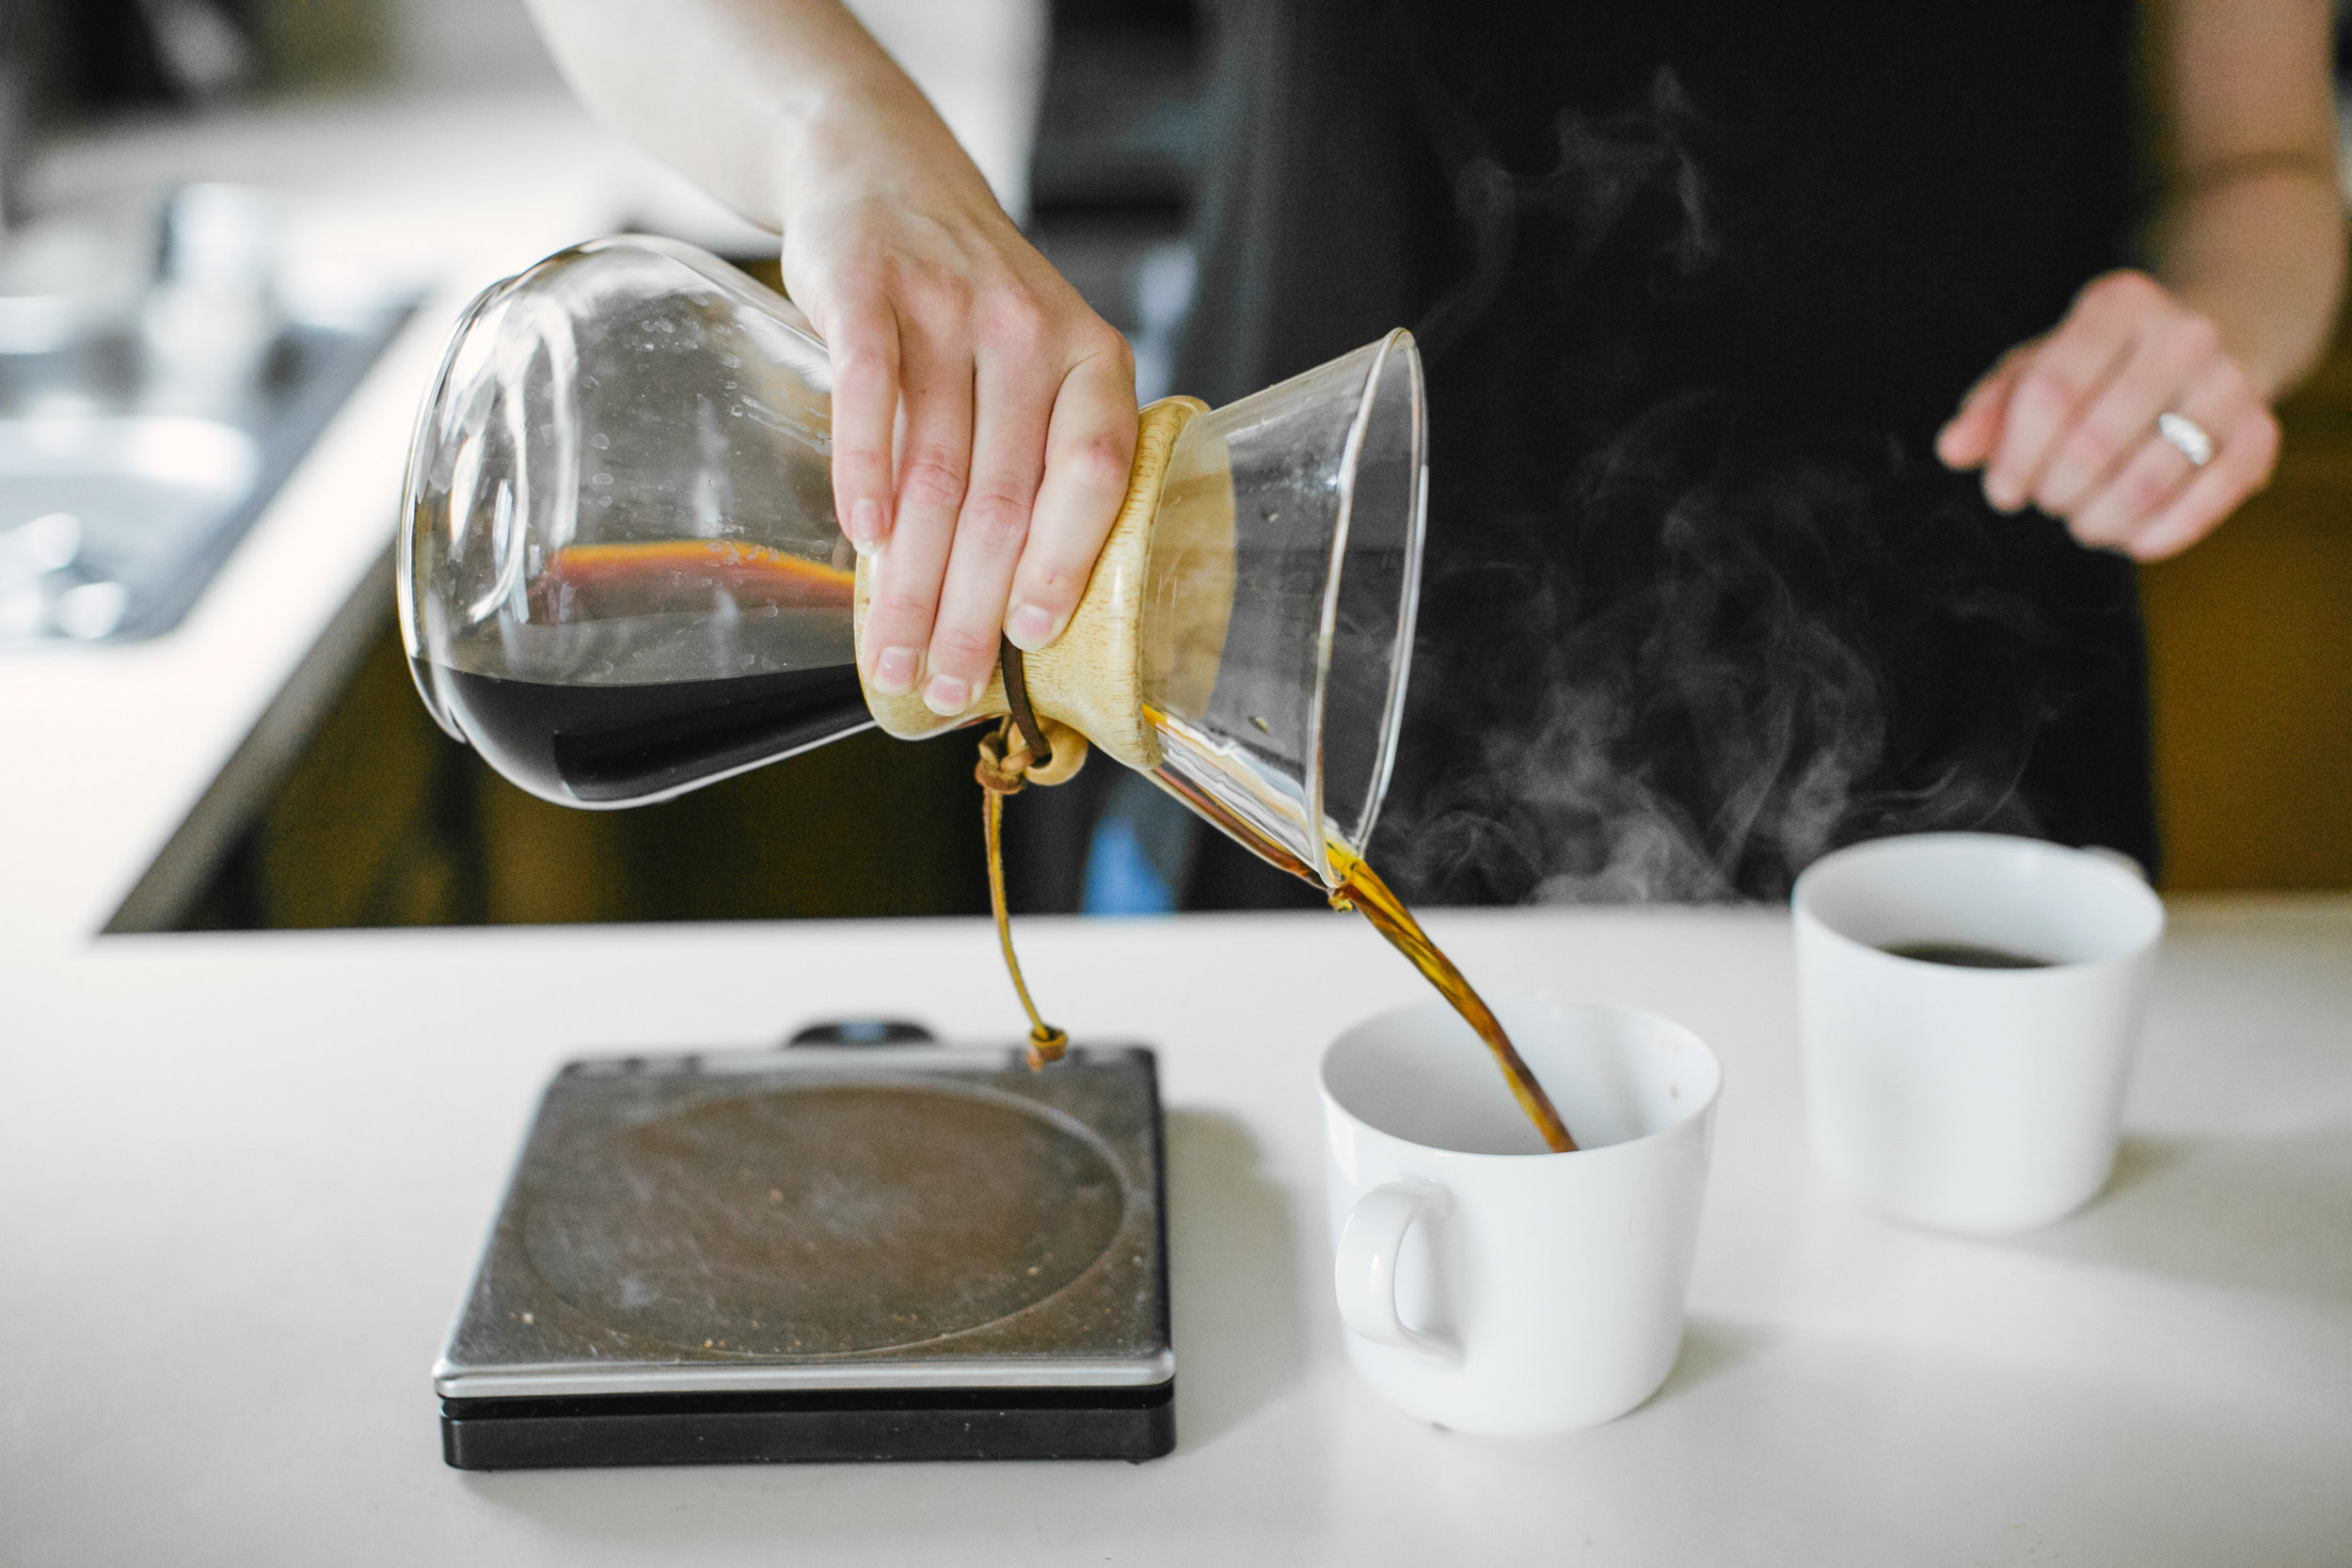 How to Brew Coffee with a Chemex | Sarah J. Hauser #coffee #chemex #coffeebrewing